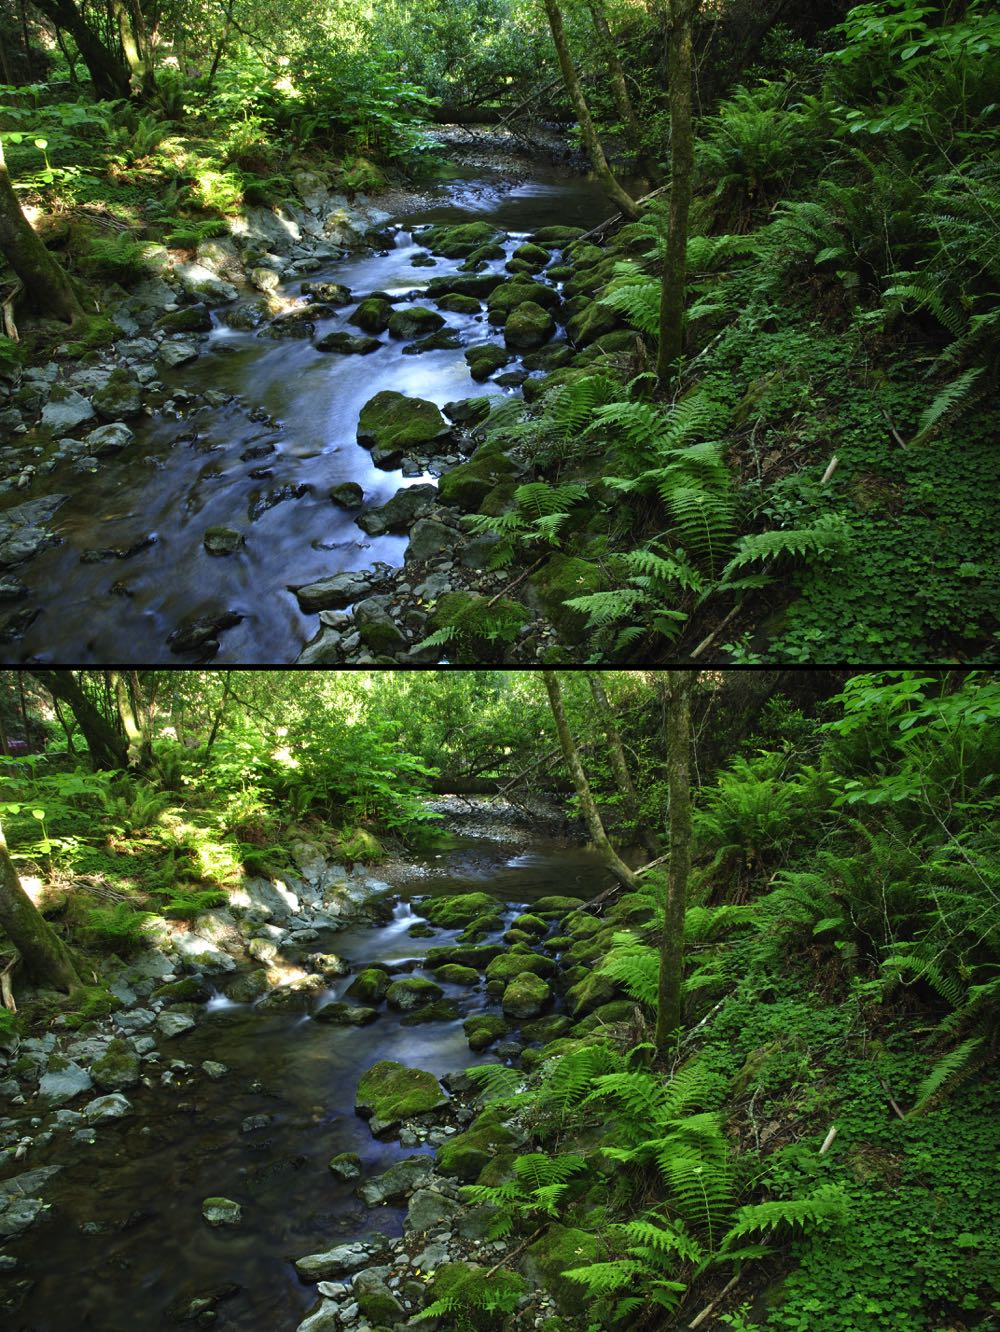 Showing Fly Fishing River Difference Between Polarized lens and non-polarized lens reflection